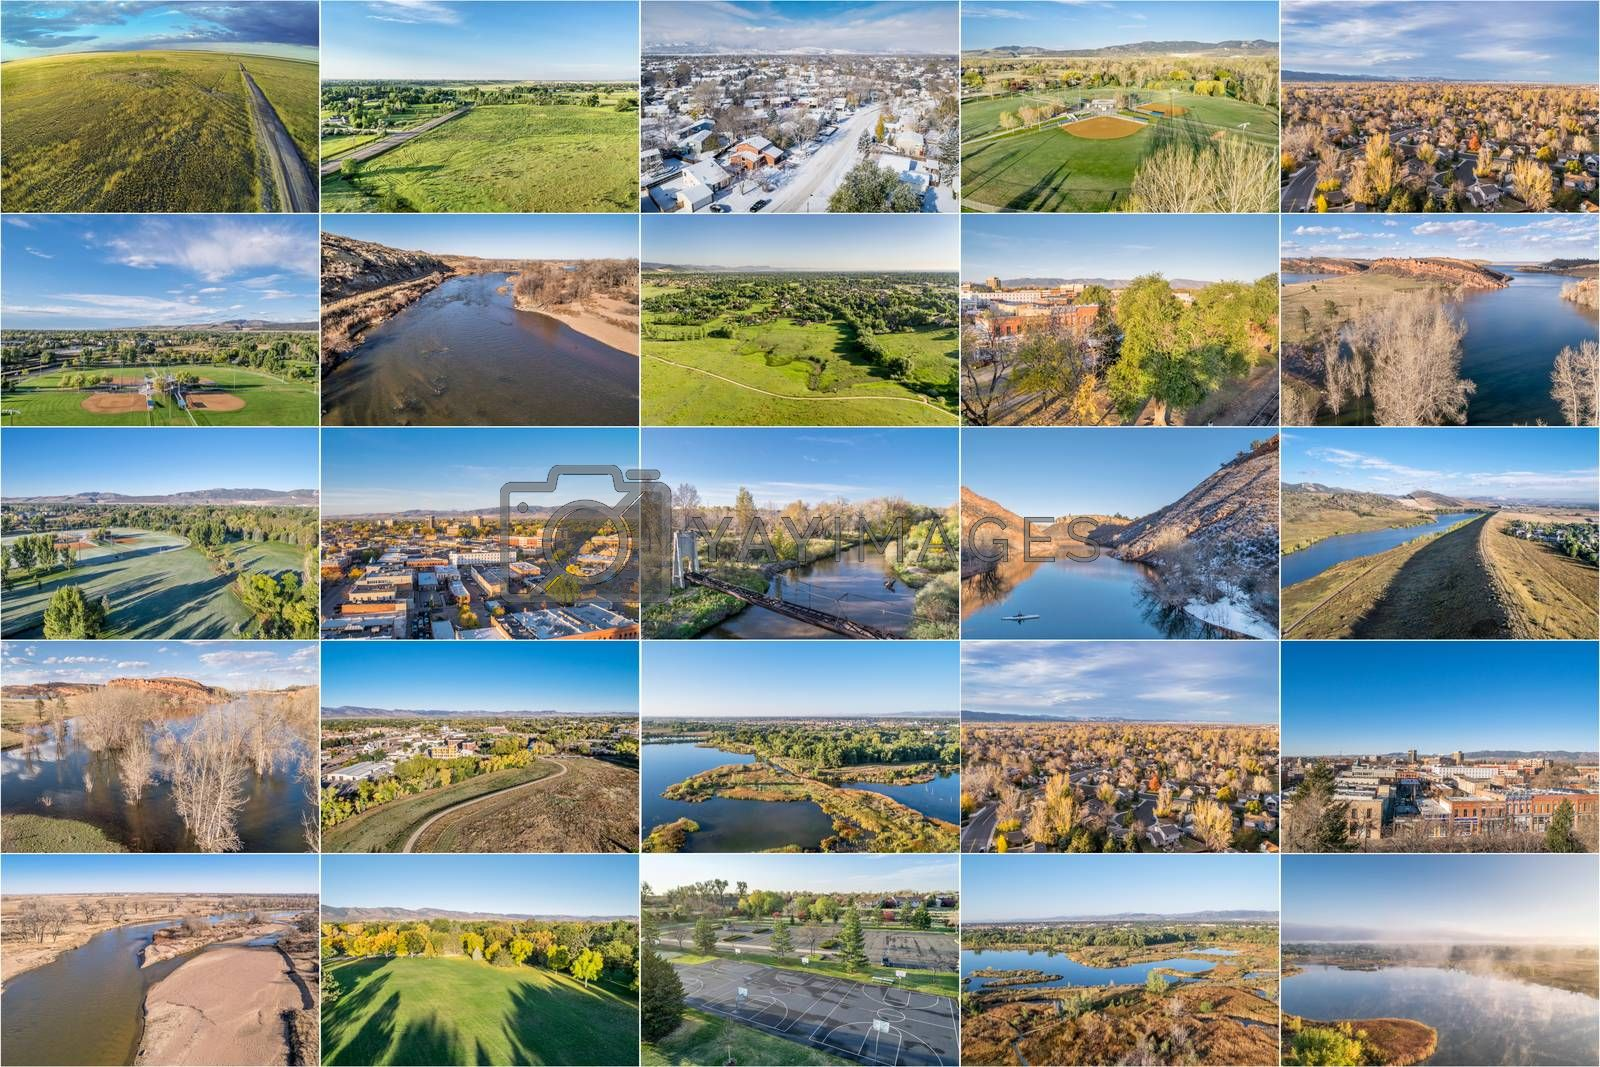 collection of aerial landscape pictures from Fort Collins and northern Colorado featuring city downtown, residential areas lakes and parks at different seasons